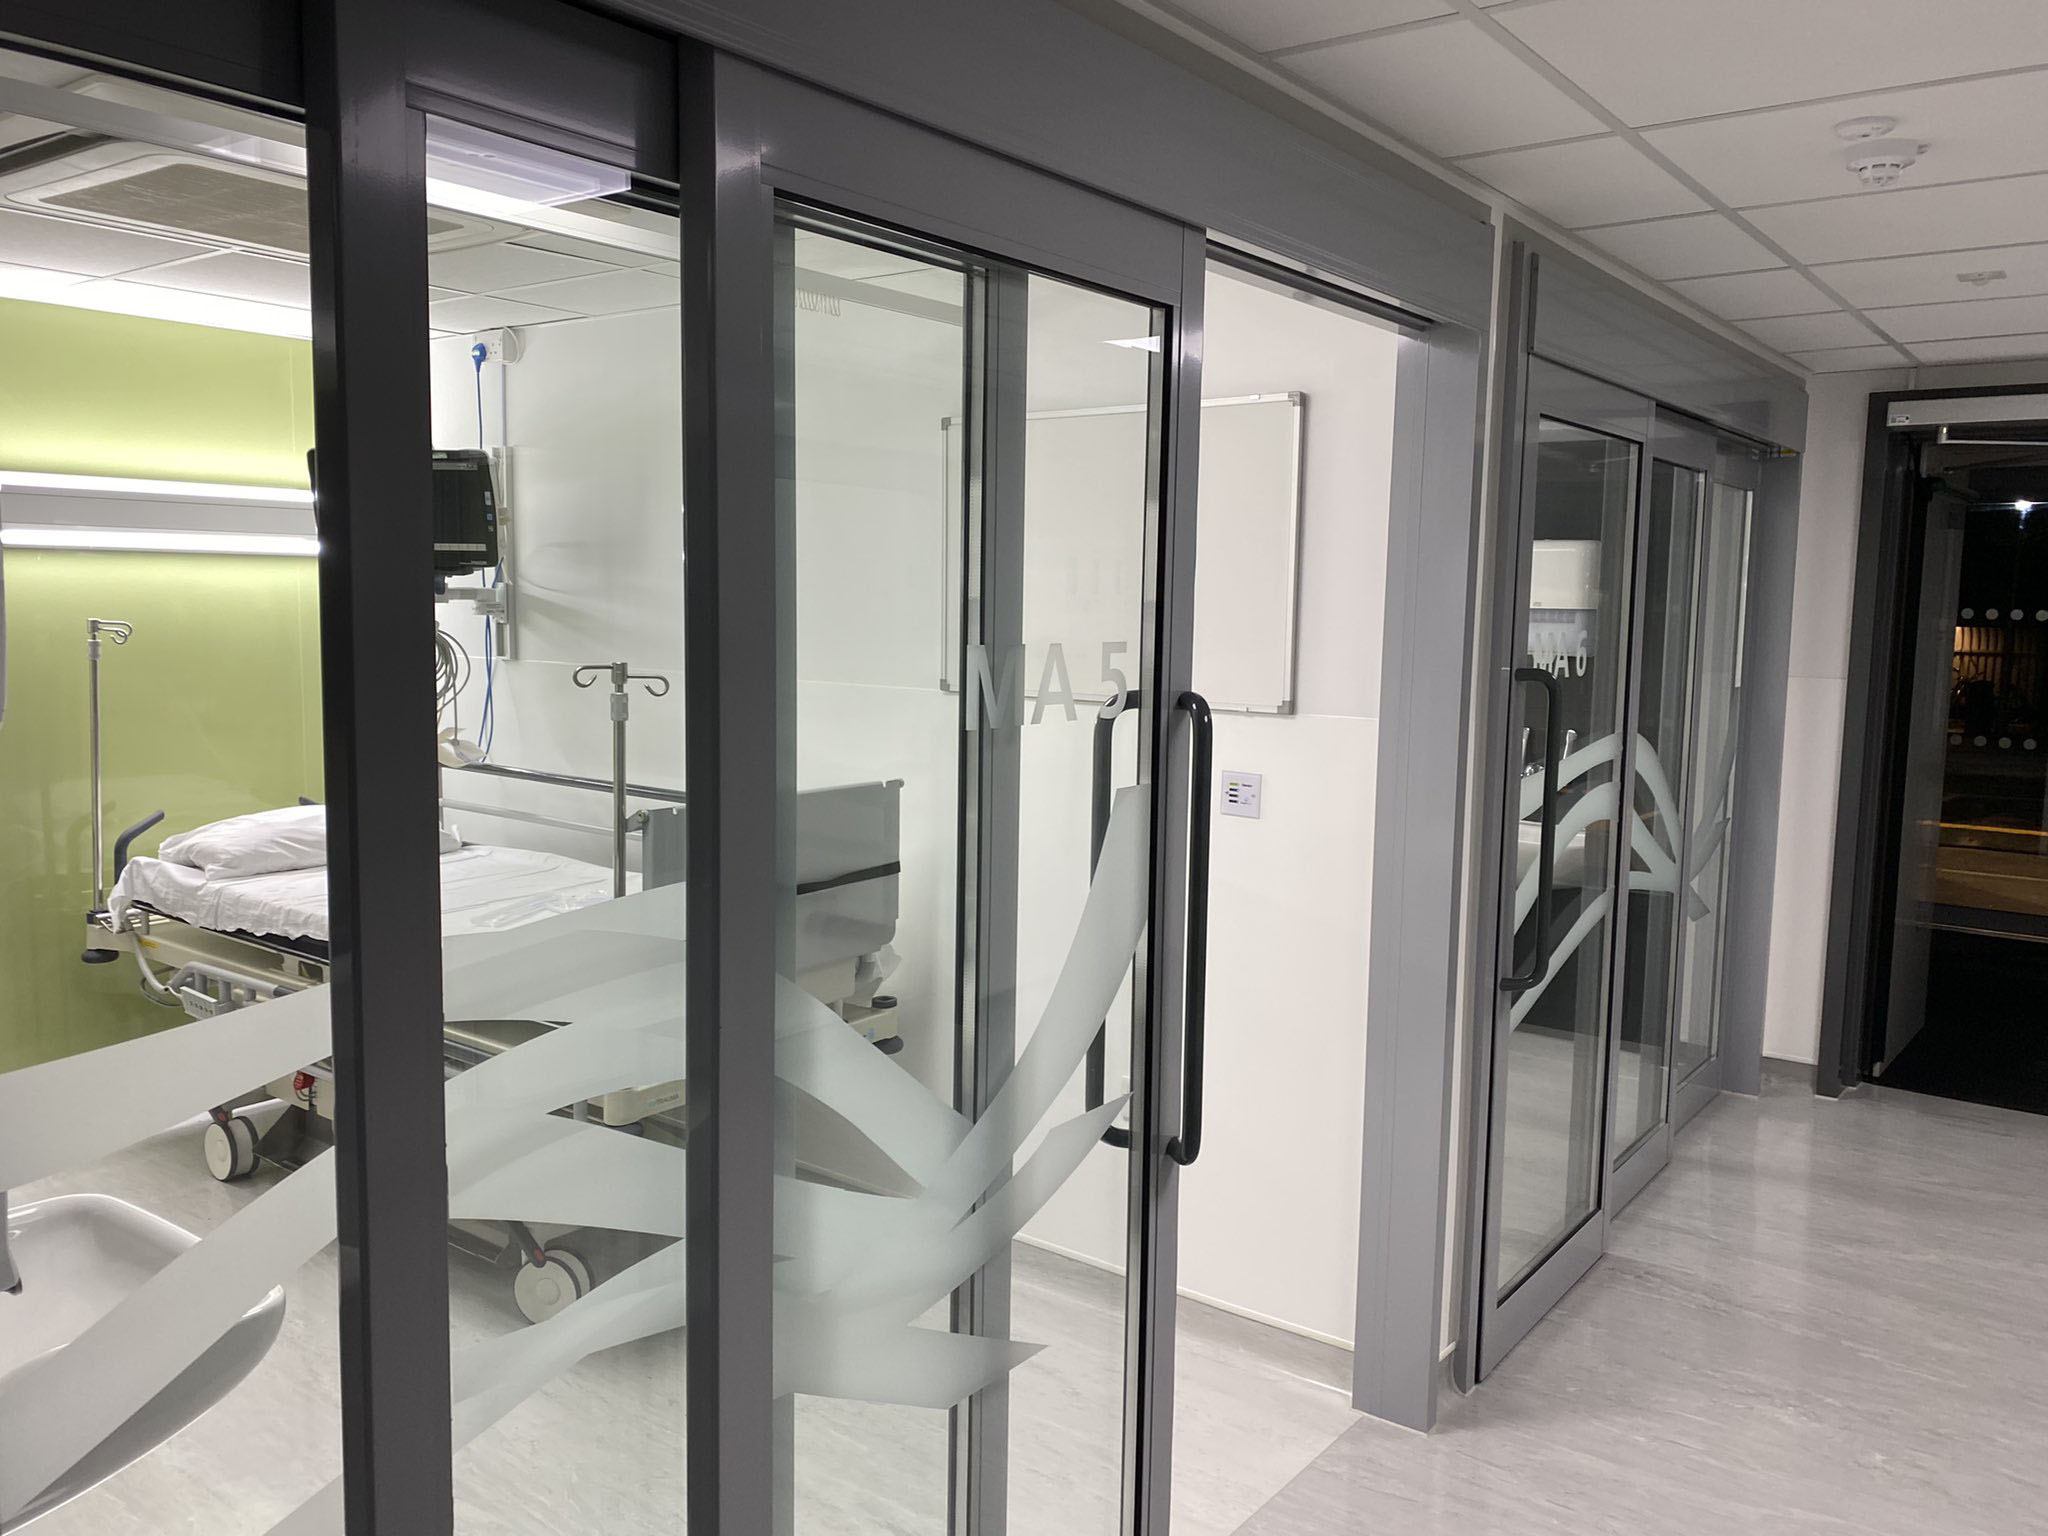 The new rapid assessment and treatment area